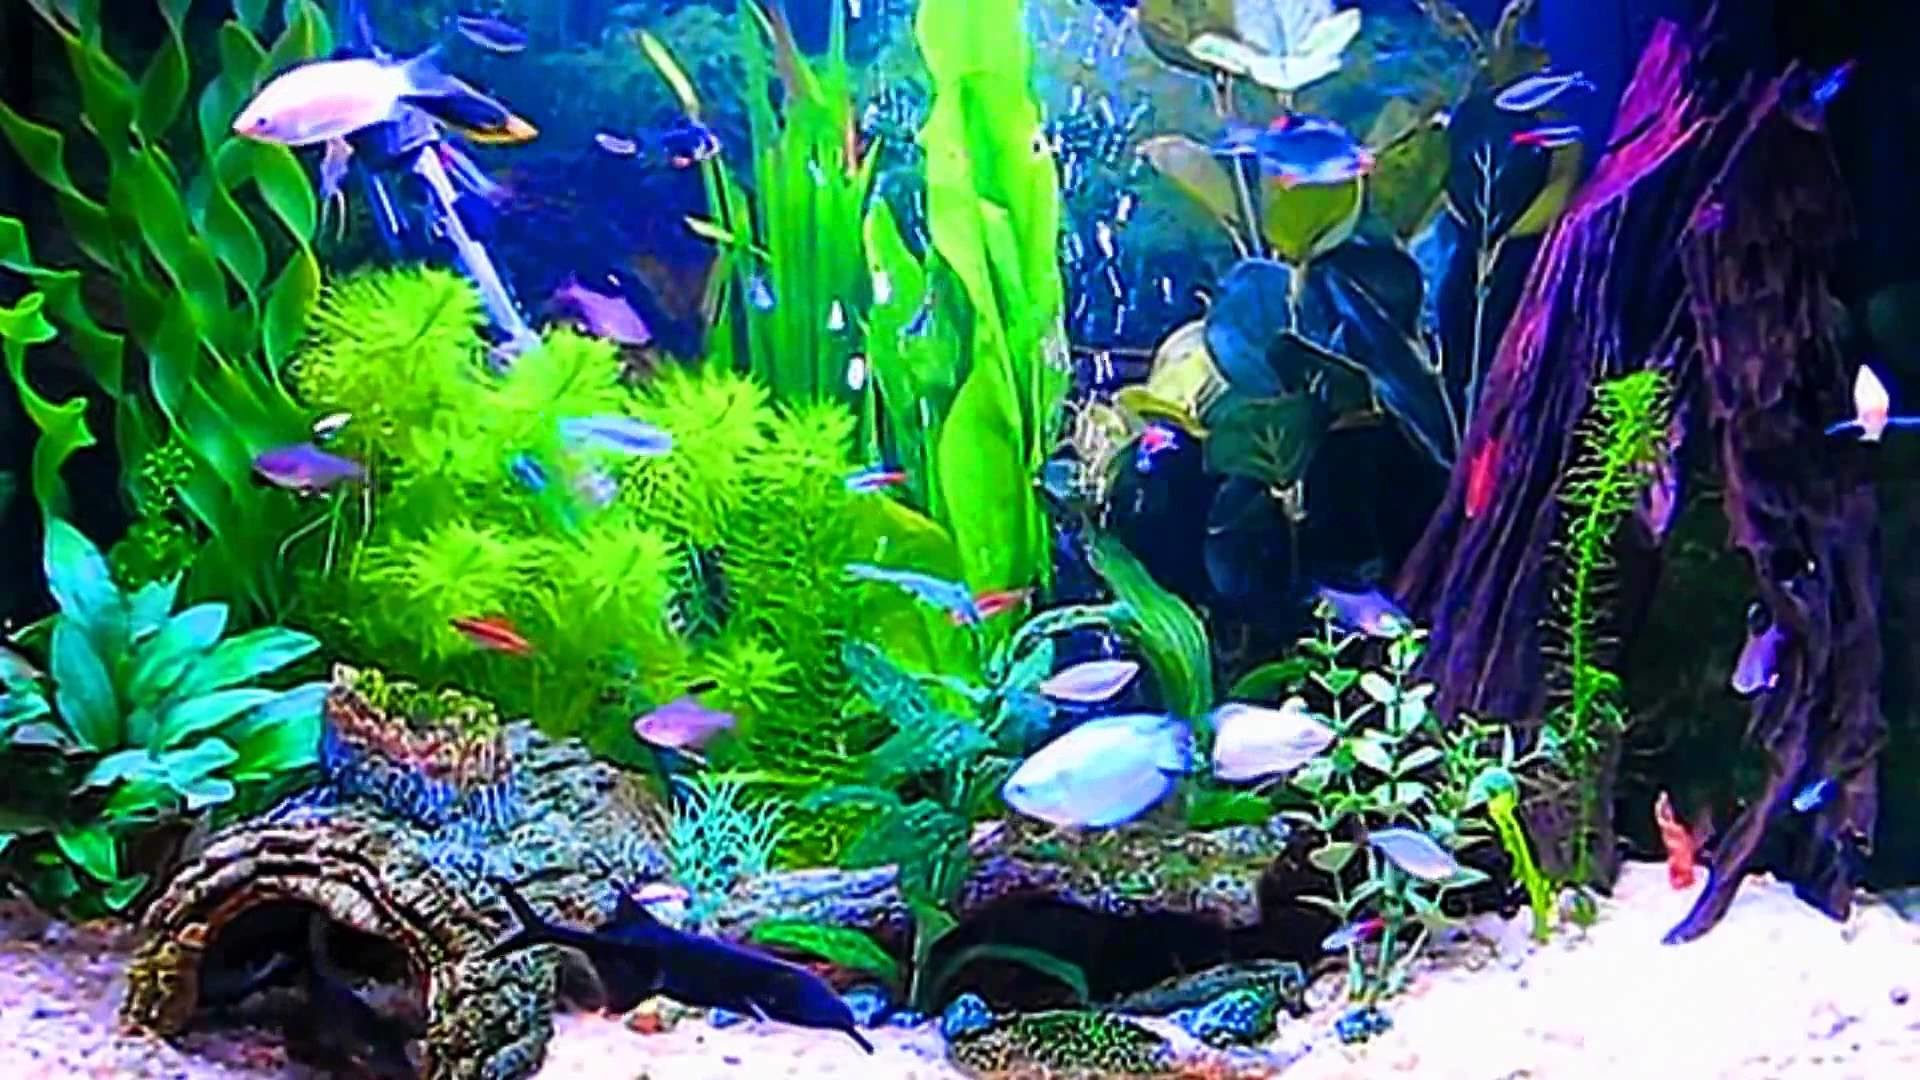 1920x1080 Desktop Aquarium 3D Live Wallpaper on Imac - YouTube · Download